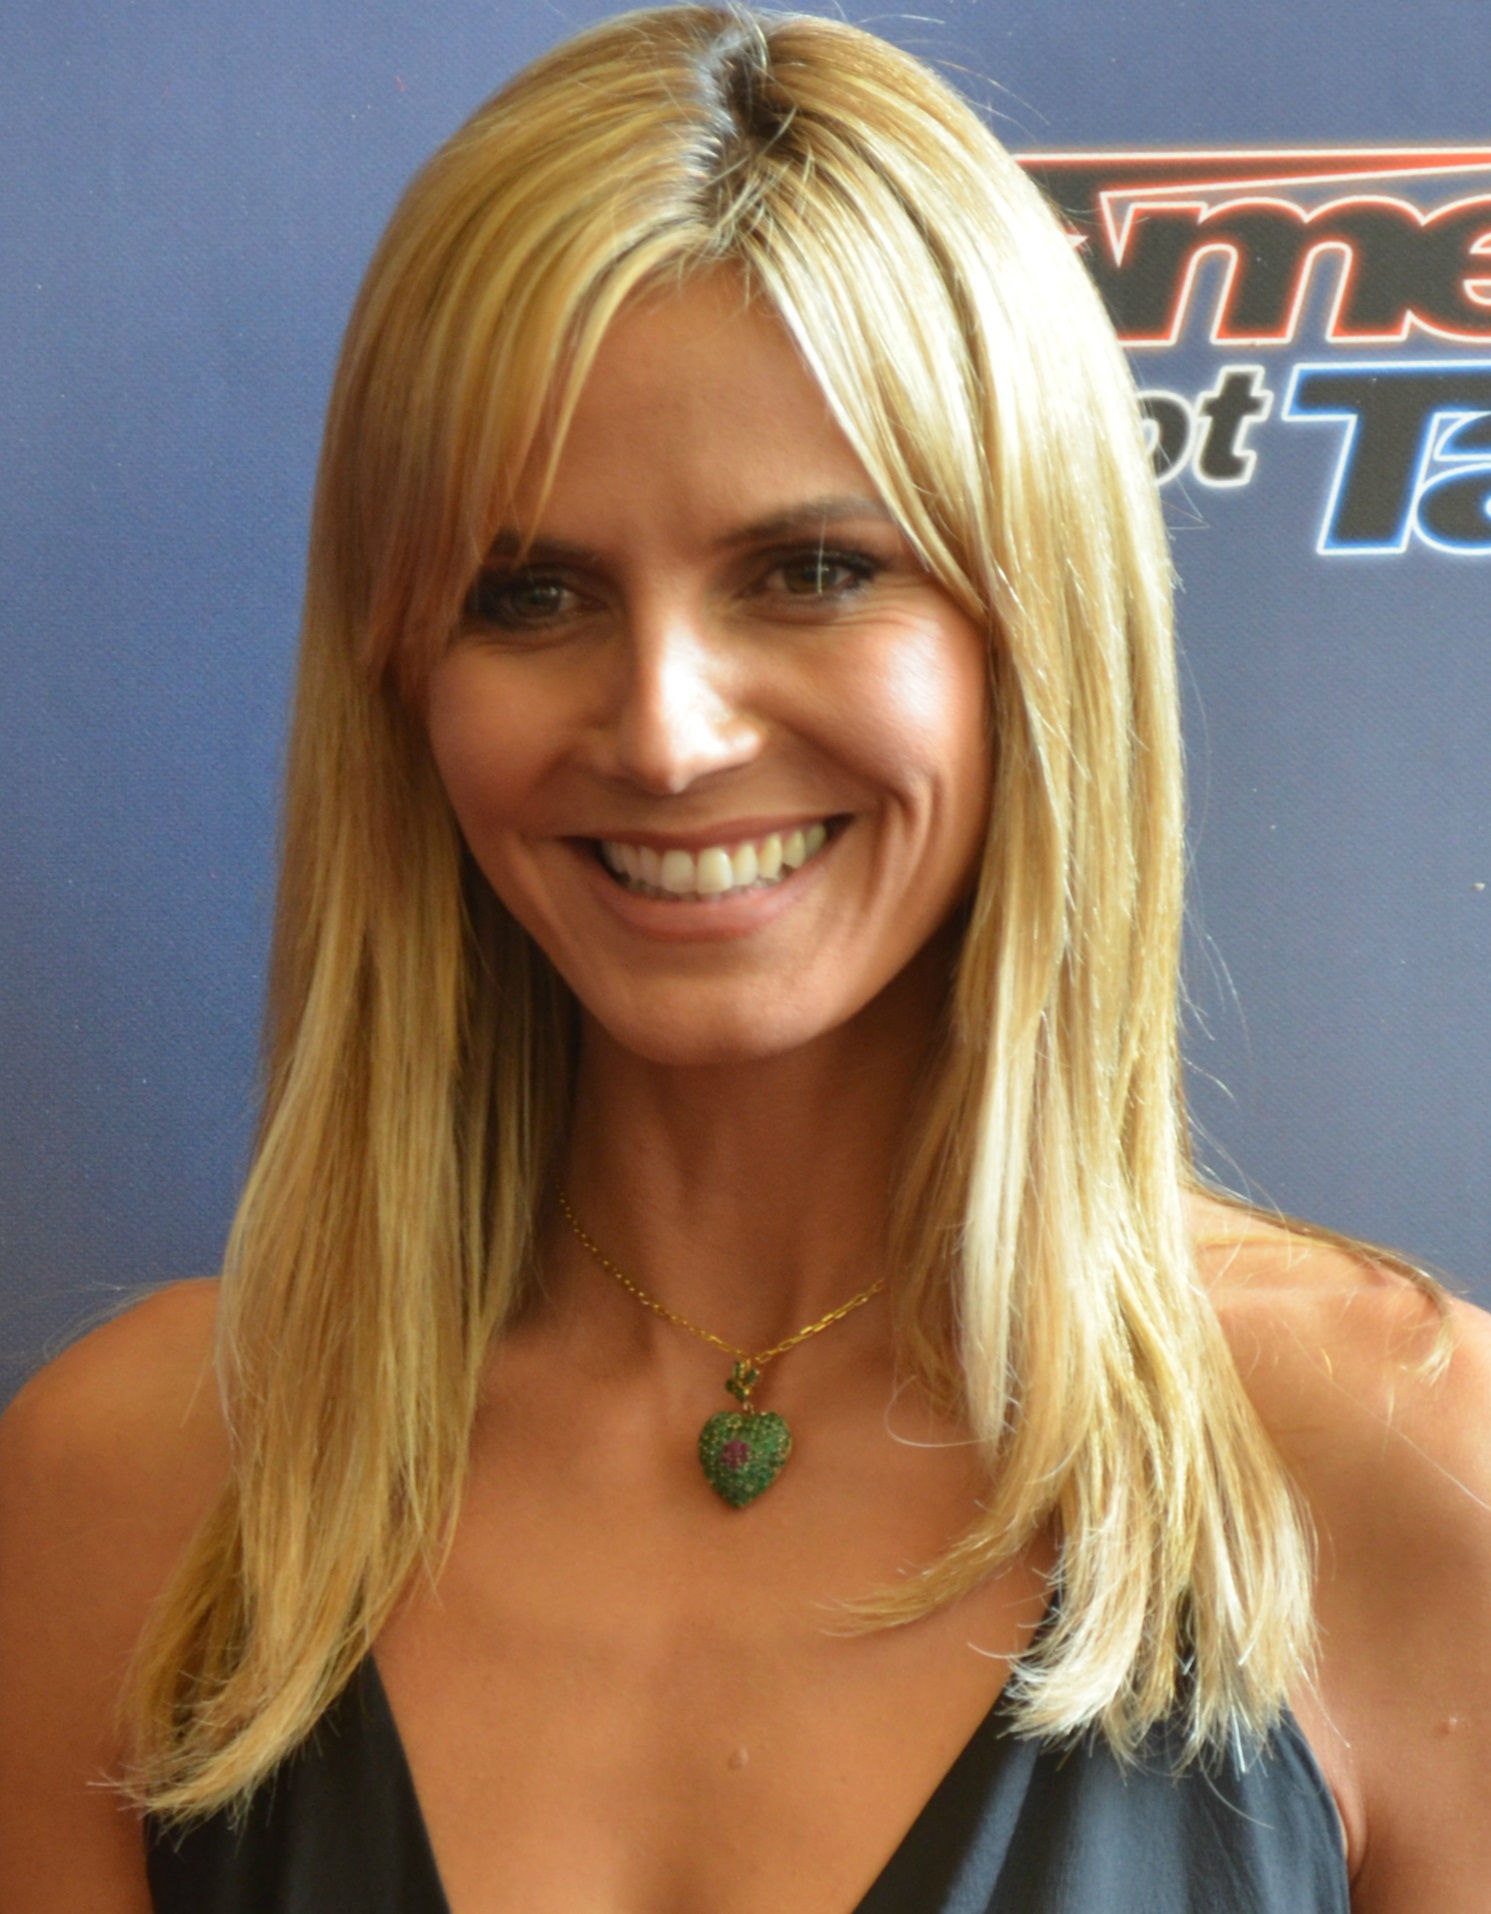 Photo of Heidi Klum: German model, television host, businesswoman, fashion designer, television producer, and actress